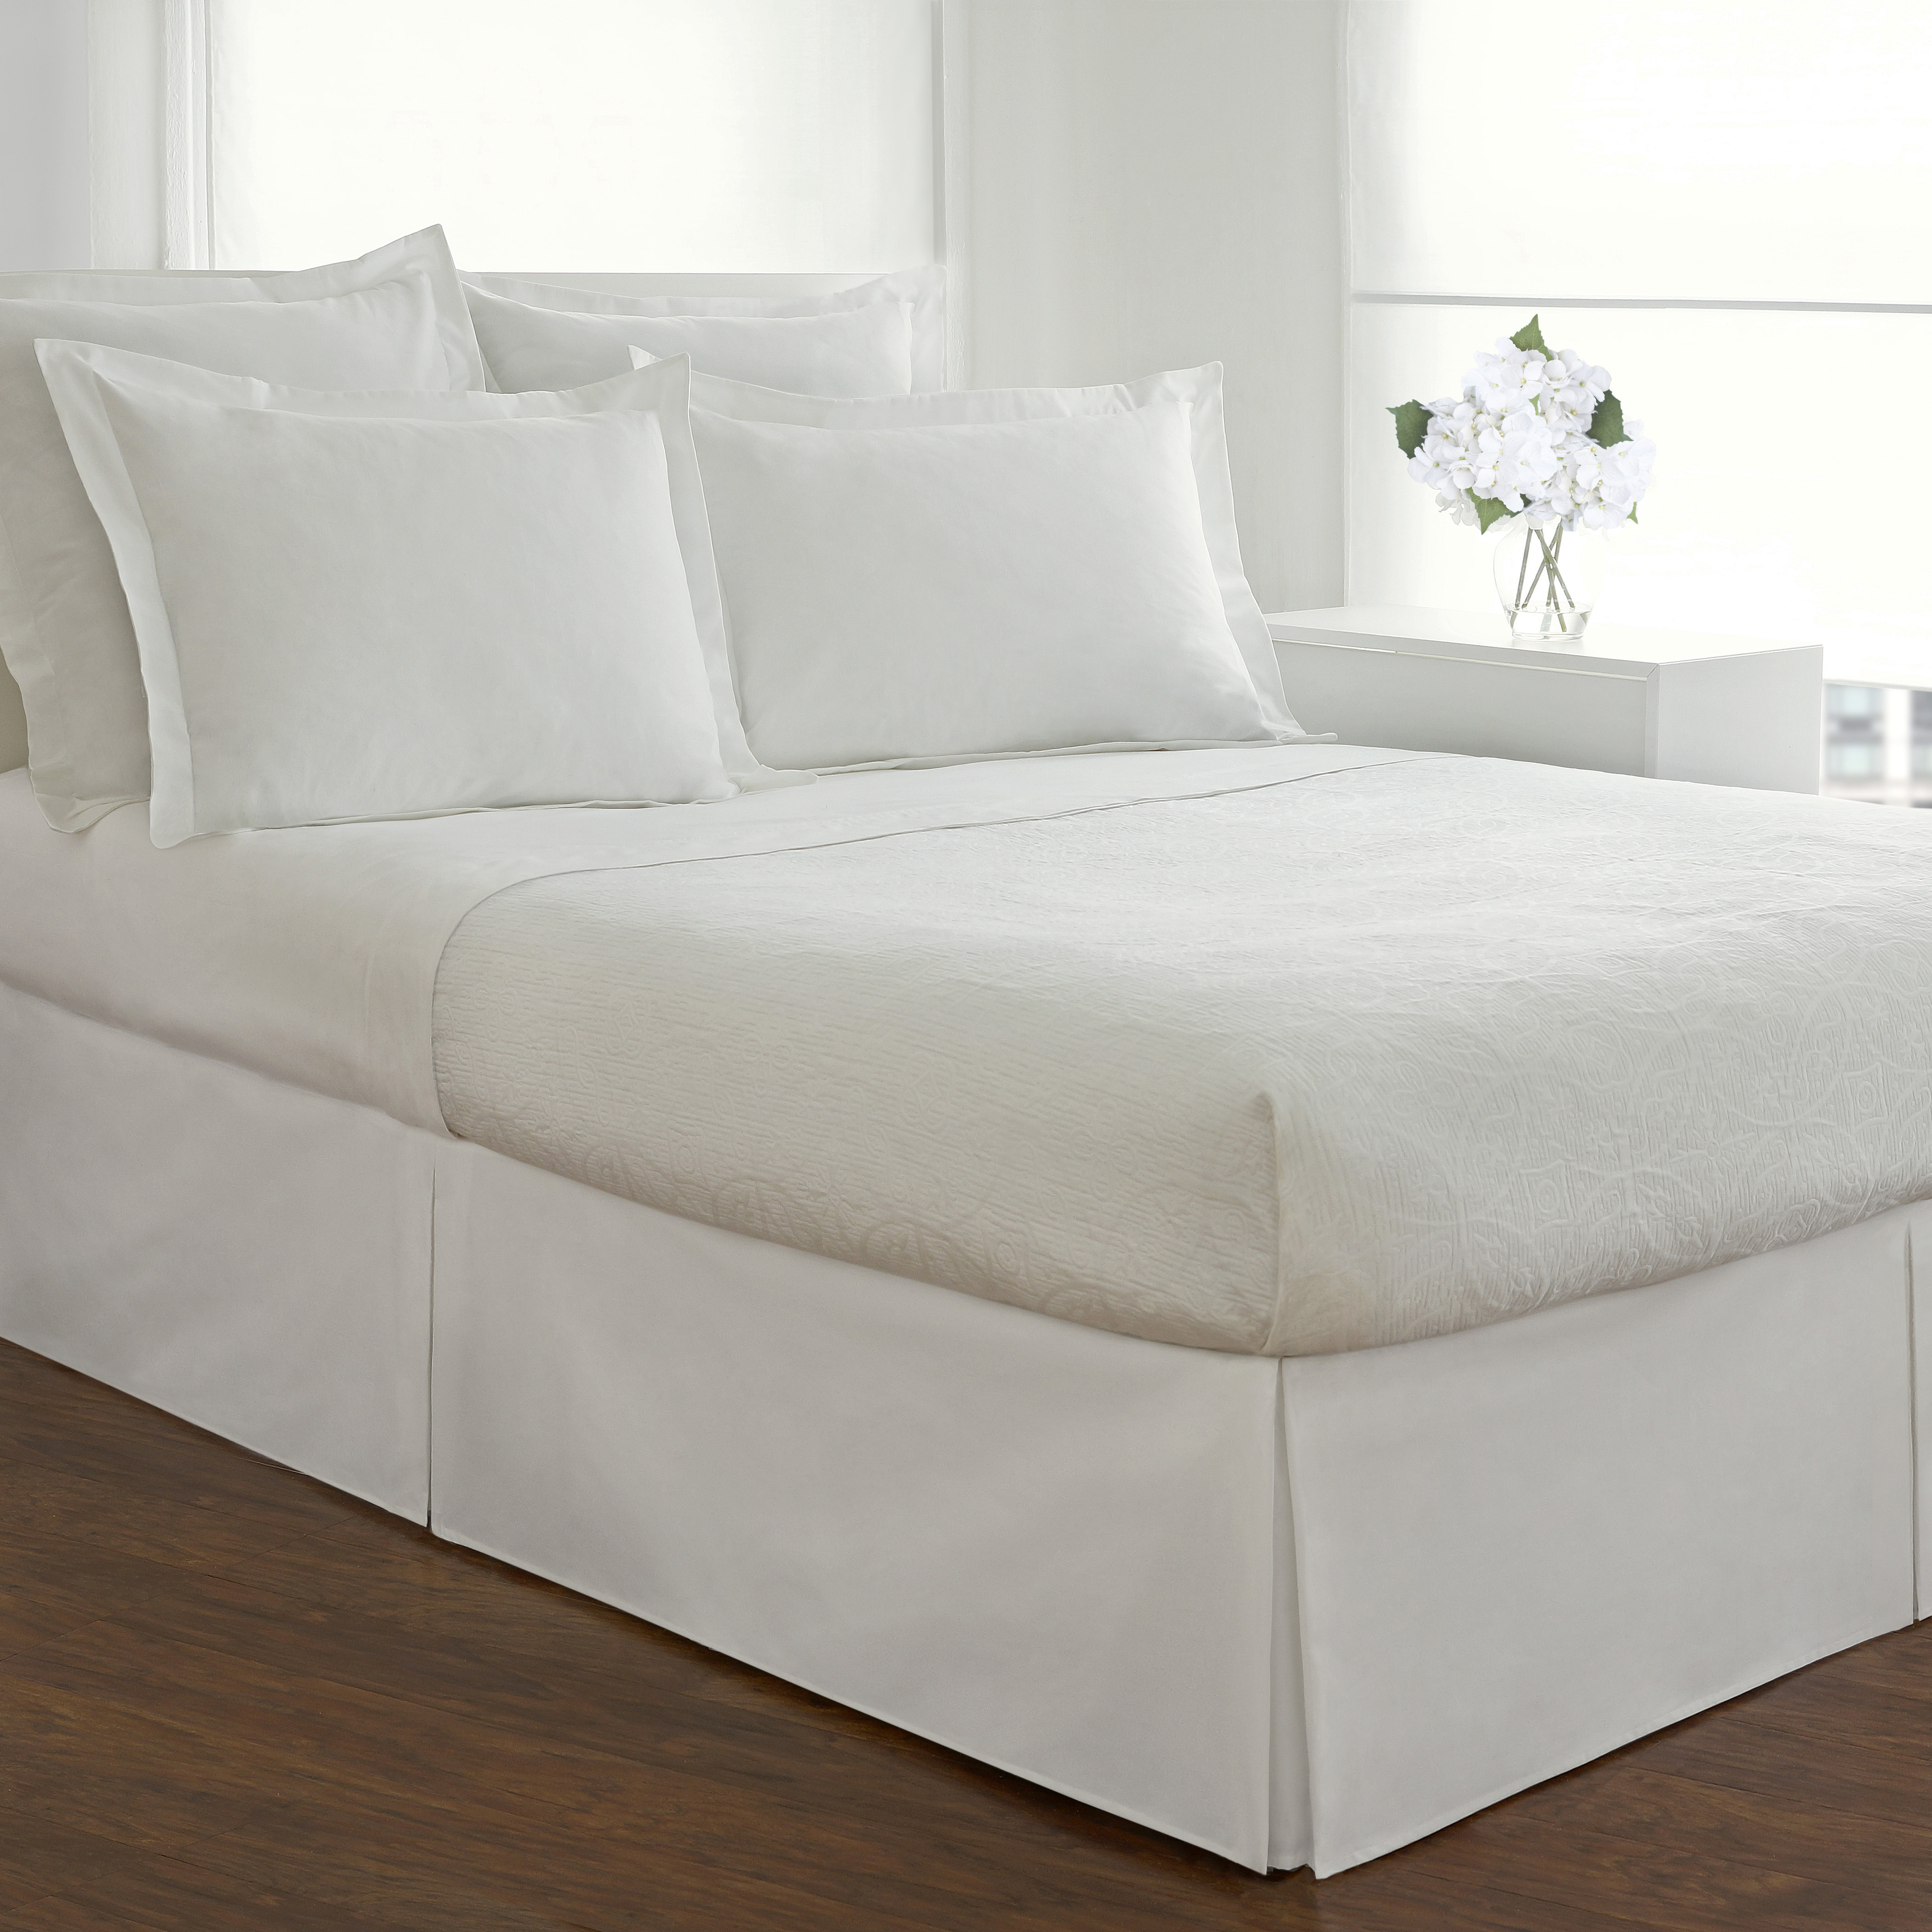 Wrinkle Resistant Cotton Blend 600 Thread Count Scroll Park Navy 15 Inch Drop King Bed skirt Set